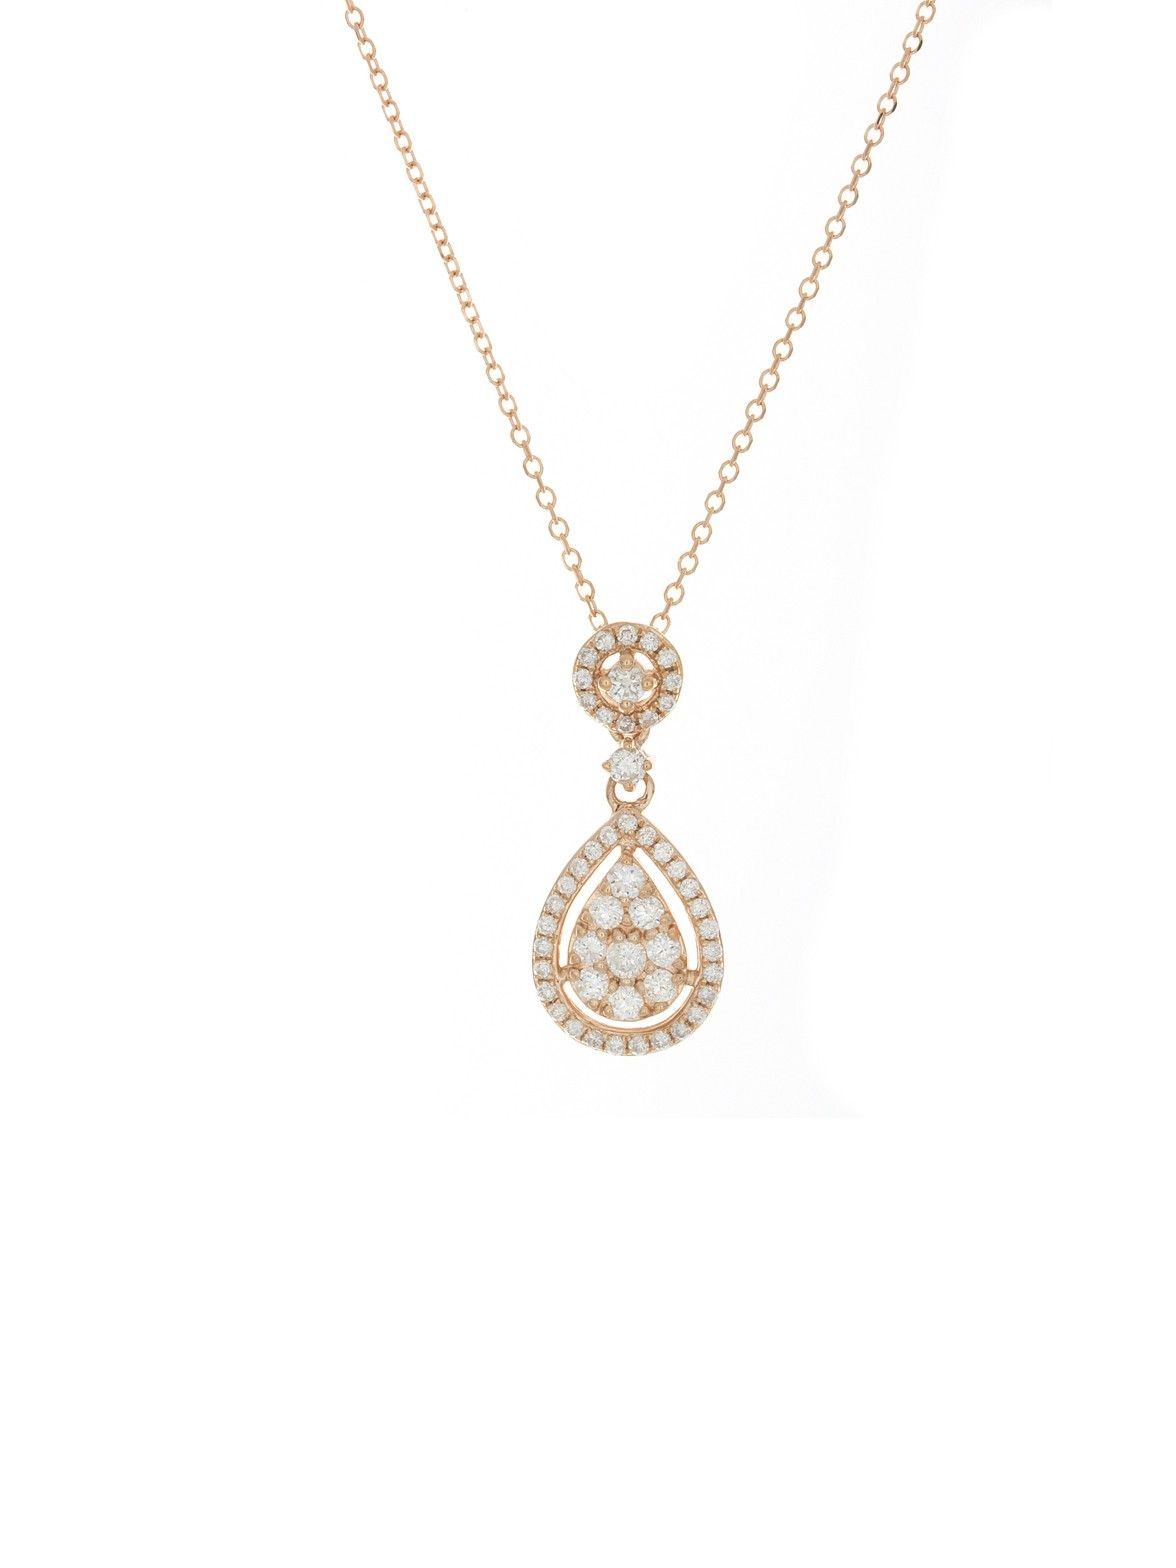 Kc designs pink gold teardrop pendant necklace pretty in pink kc designs pink gold teardrop pendant necklace aloadofball Image collections